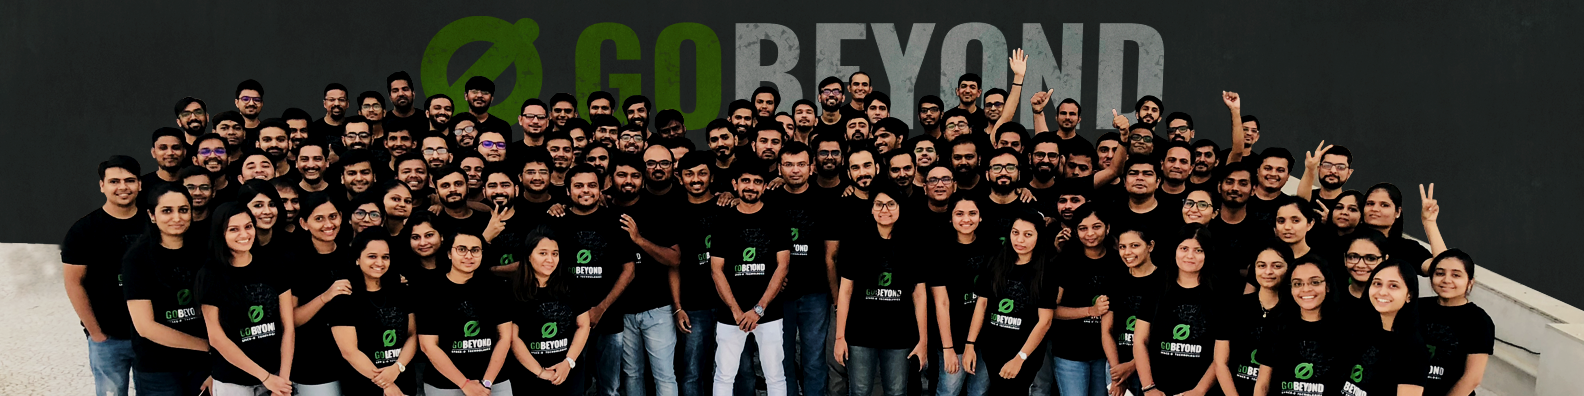 GoBeyond Team pic